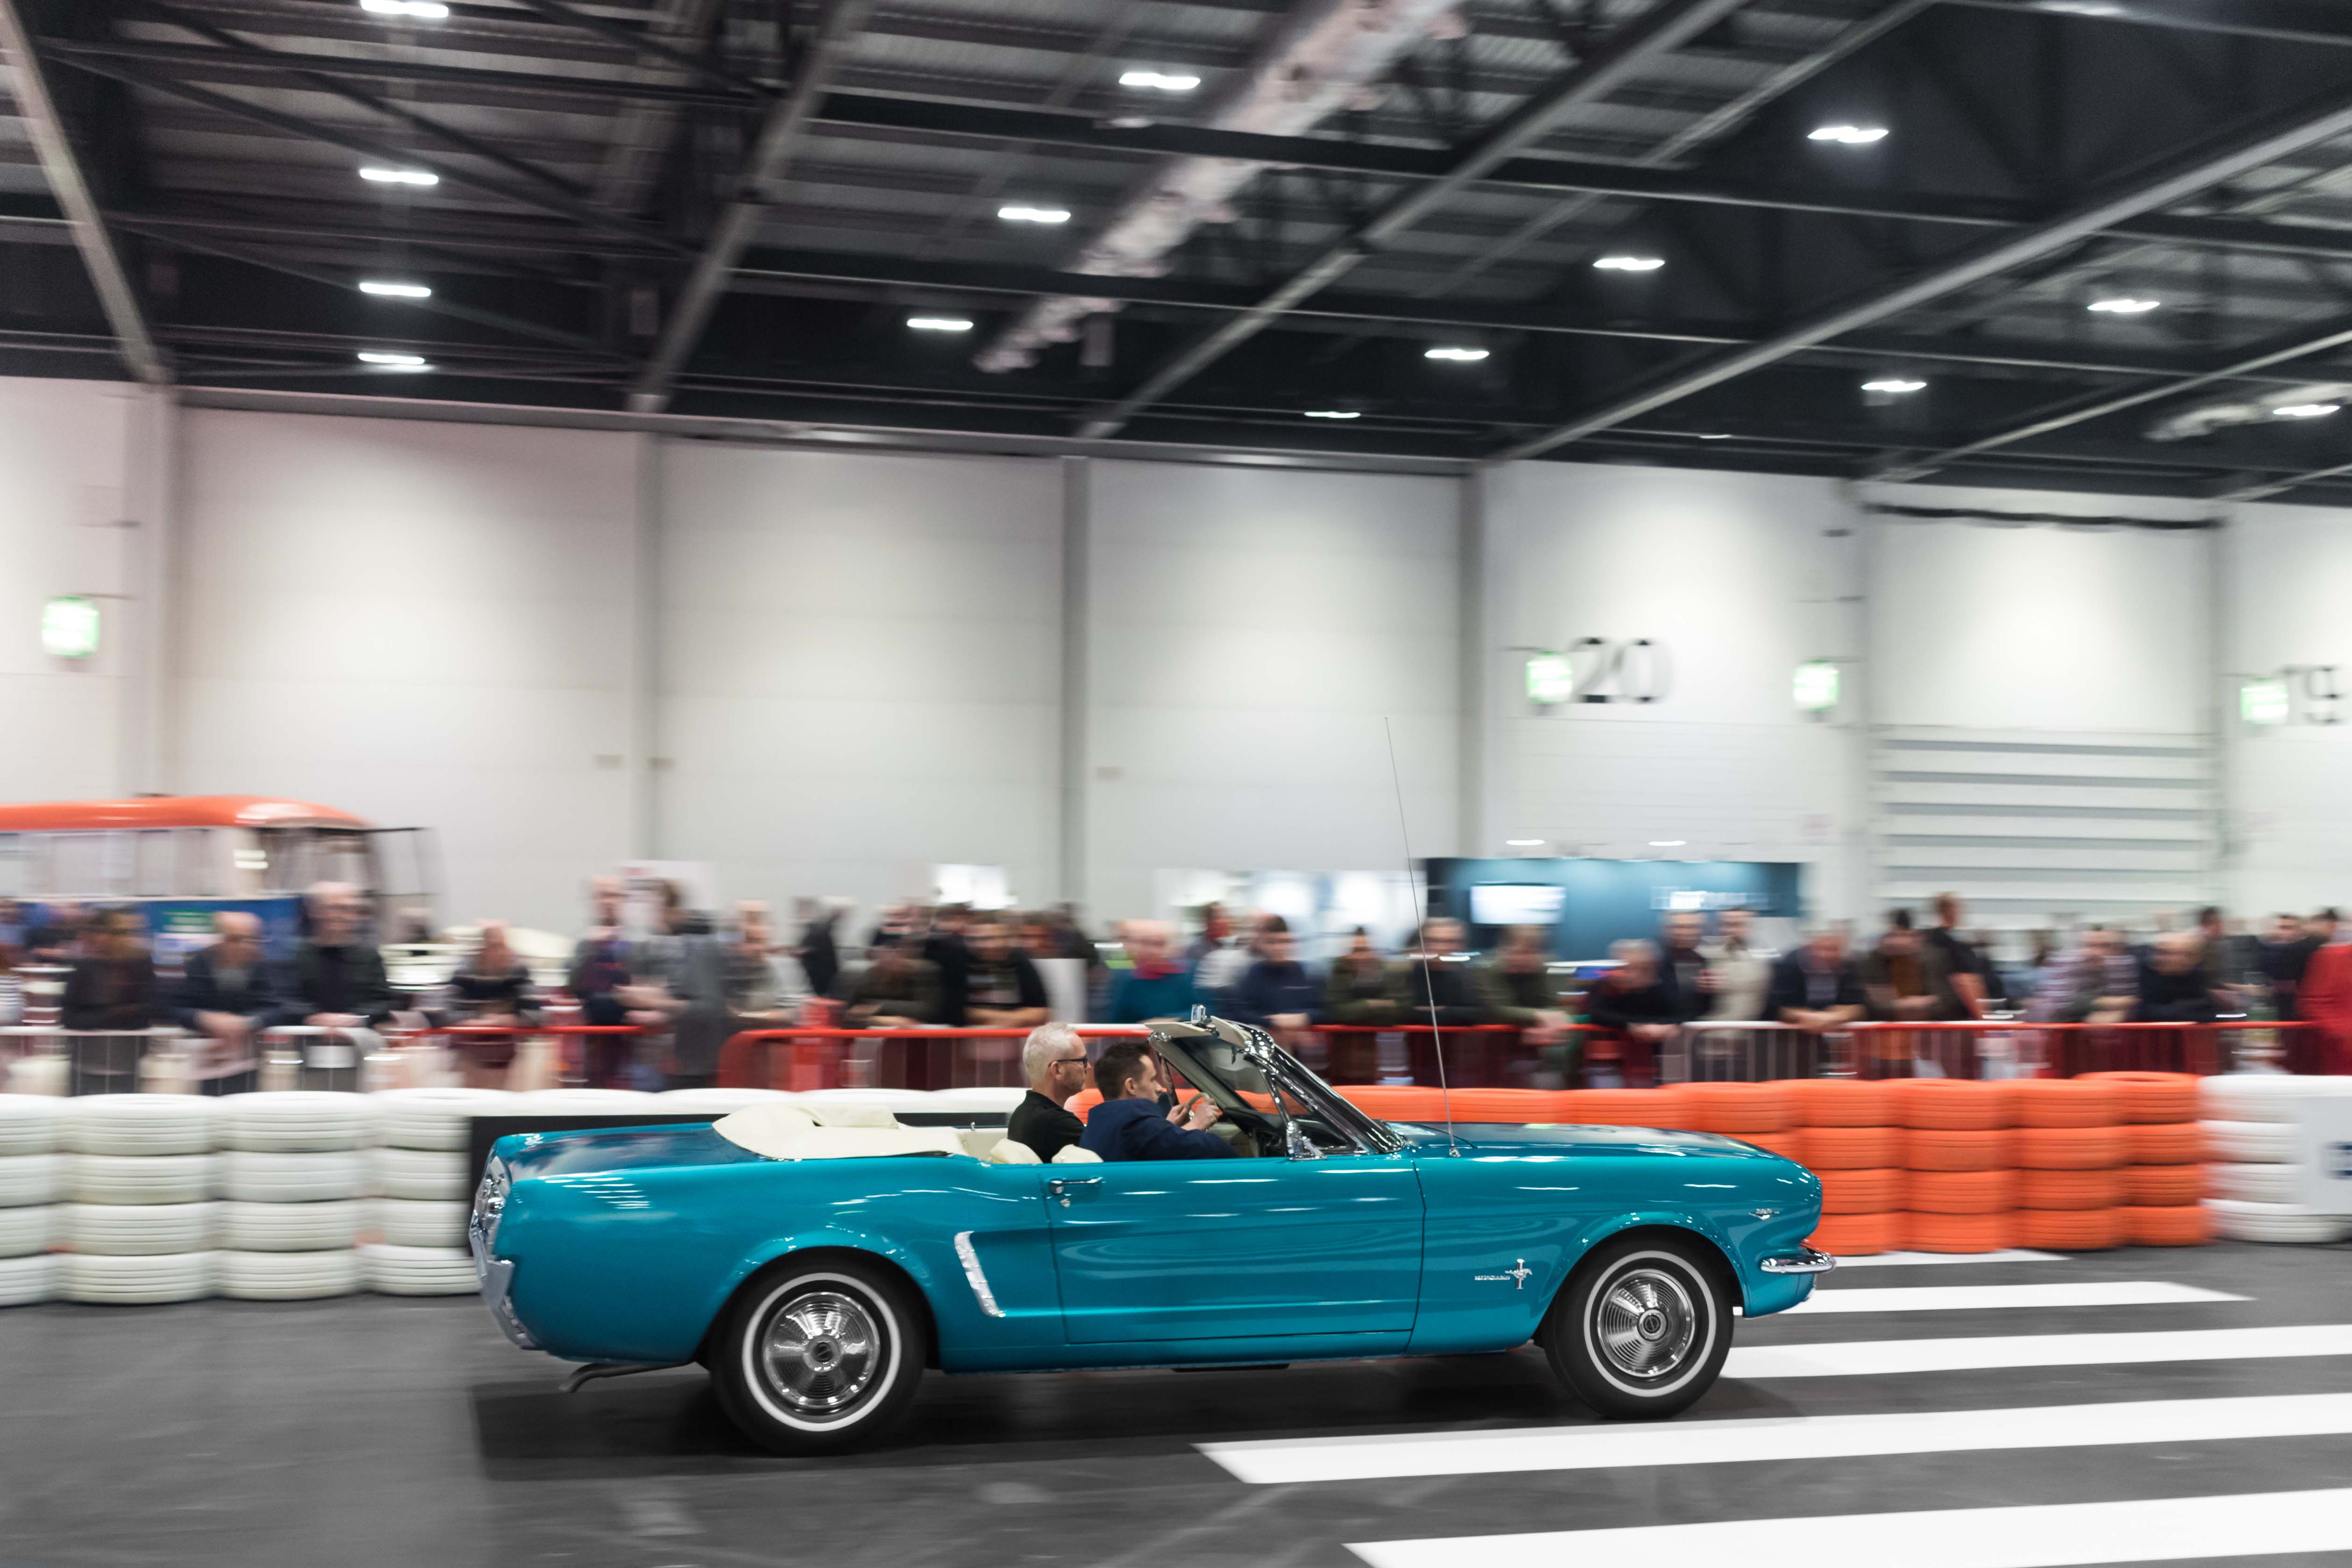 ClassicCarShow3.jpg (1.05 MB)